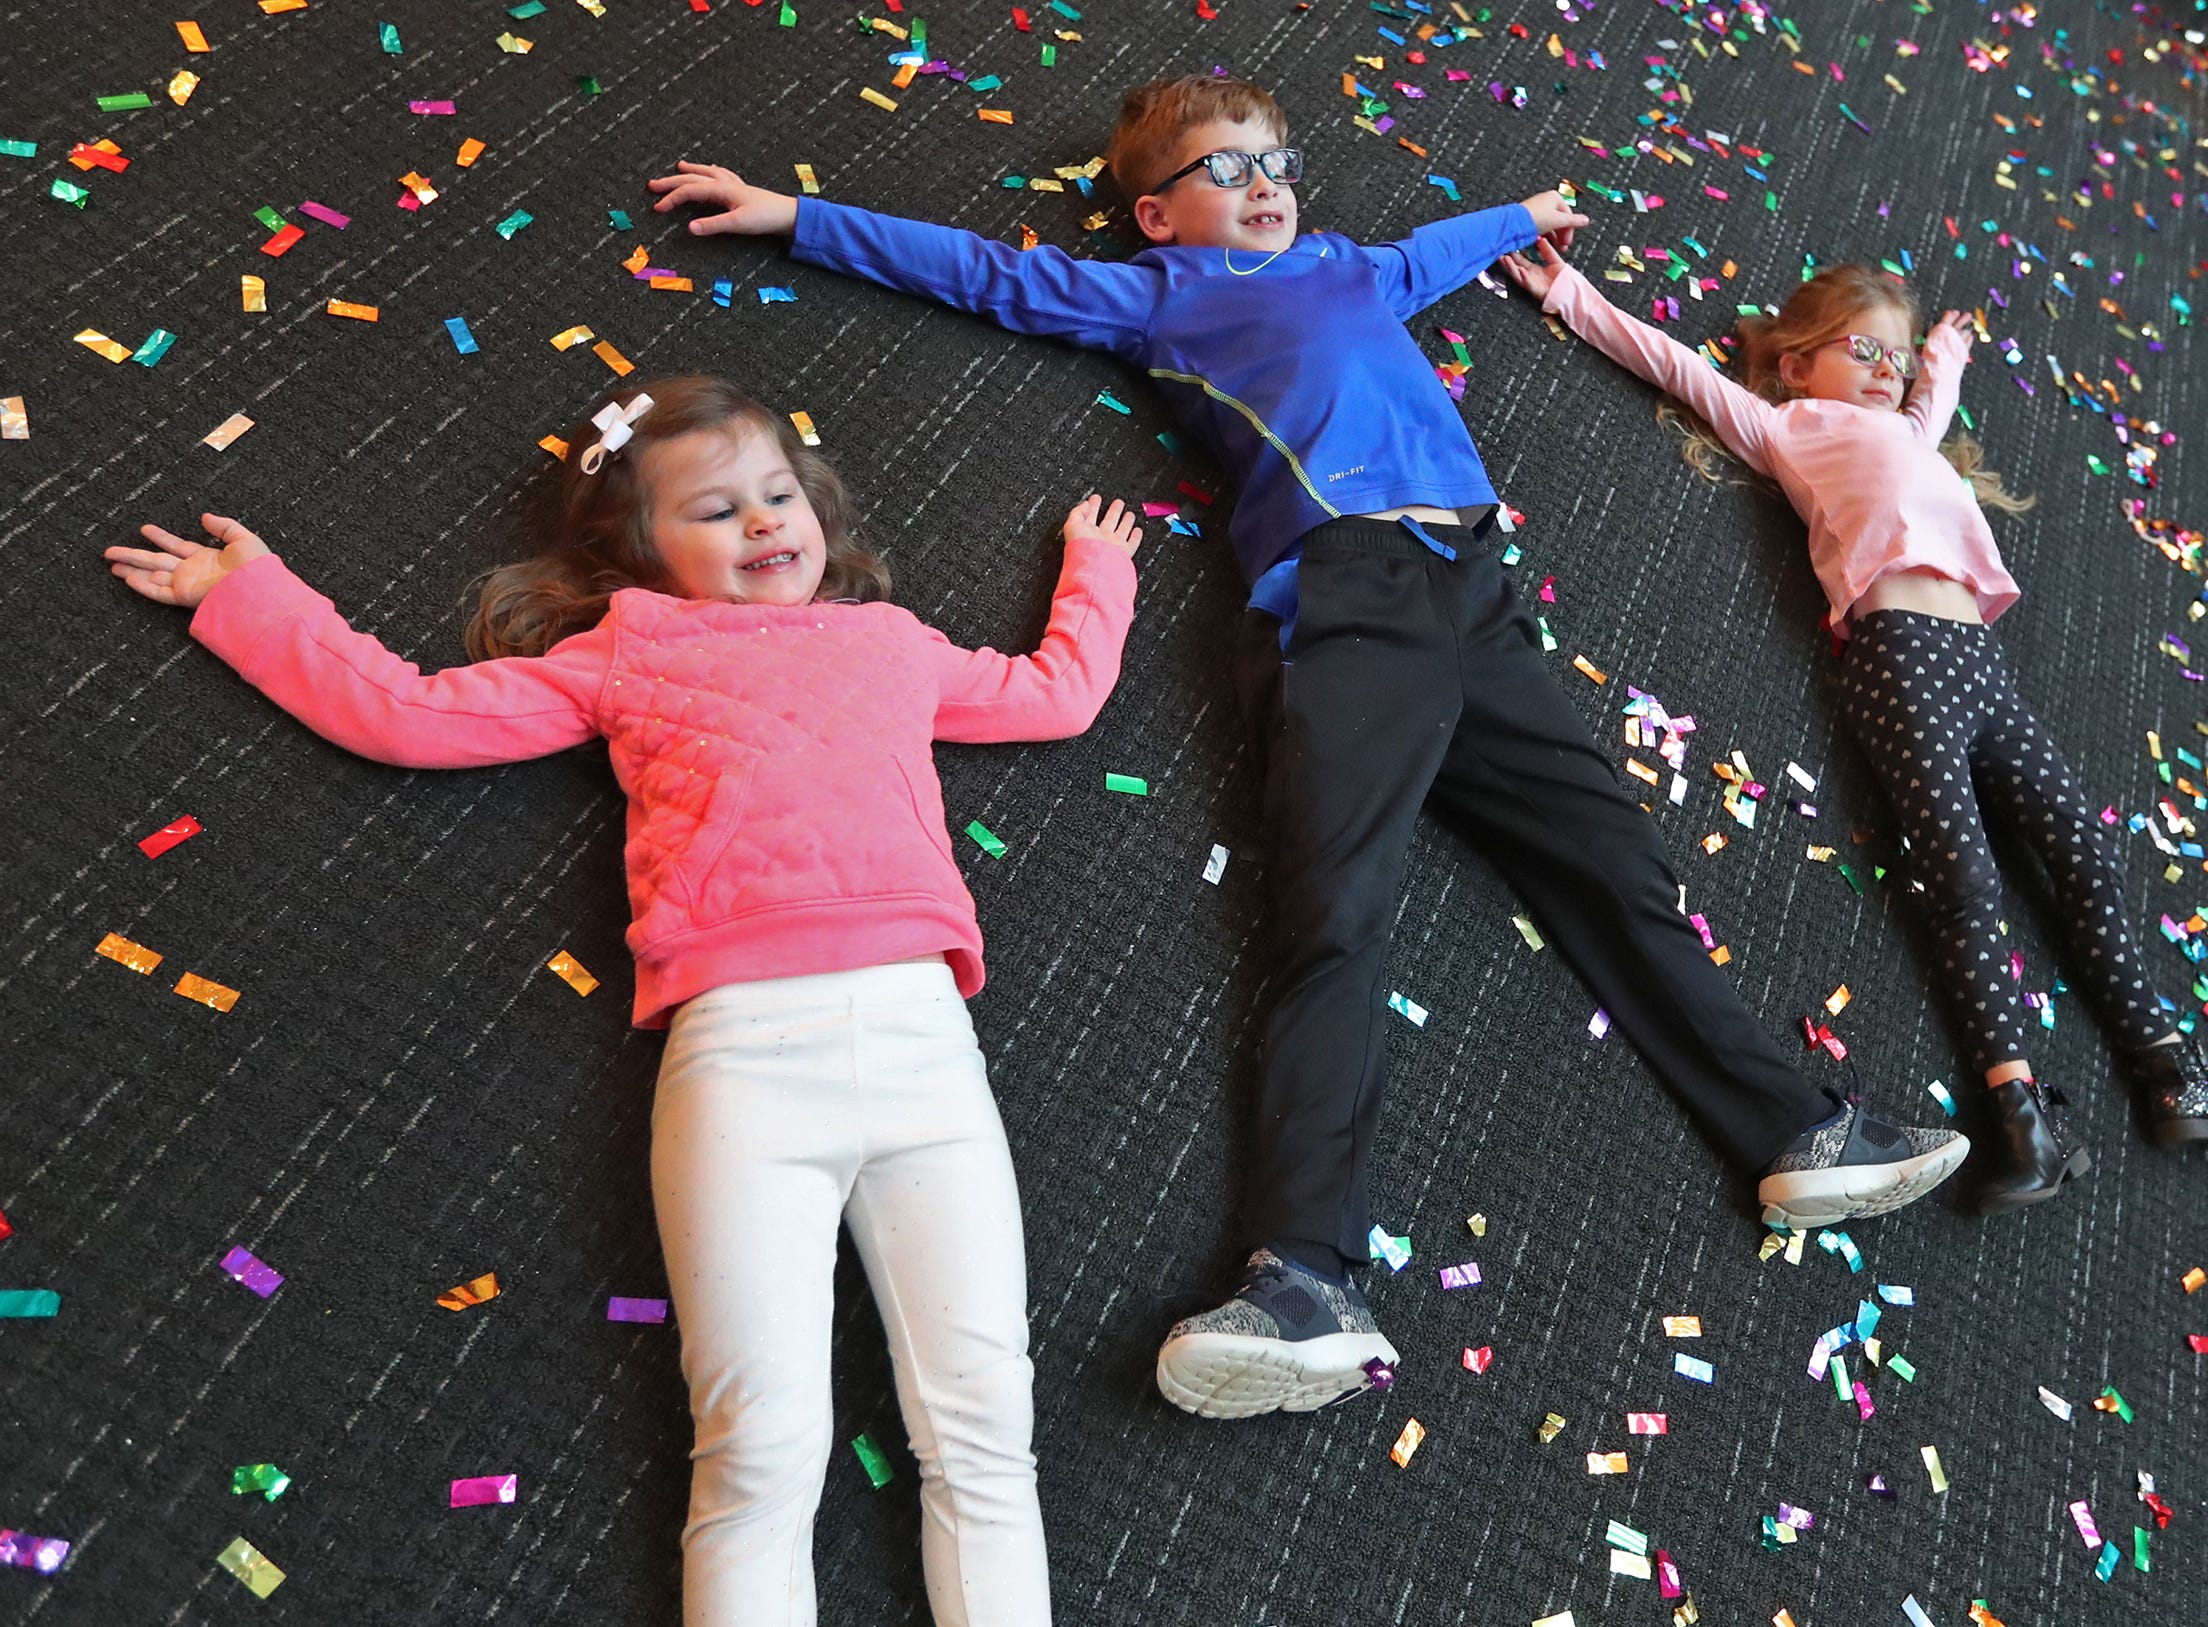 Hayden Soultz, from left, Easton Pedigo, and Cora Pedigo do snow angels and pose for photos in the confetti dropped at noon, at the Countdown to noon celebration at the Children's Museum of Indianapolis, Monday, Dec. 31, 2018.